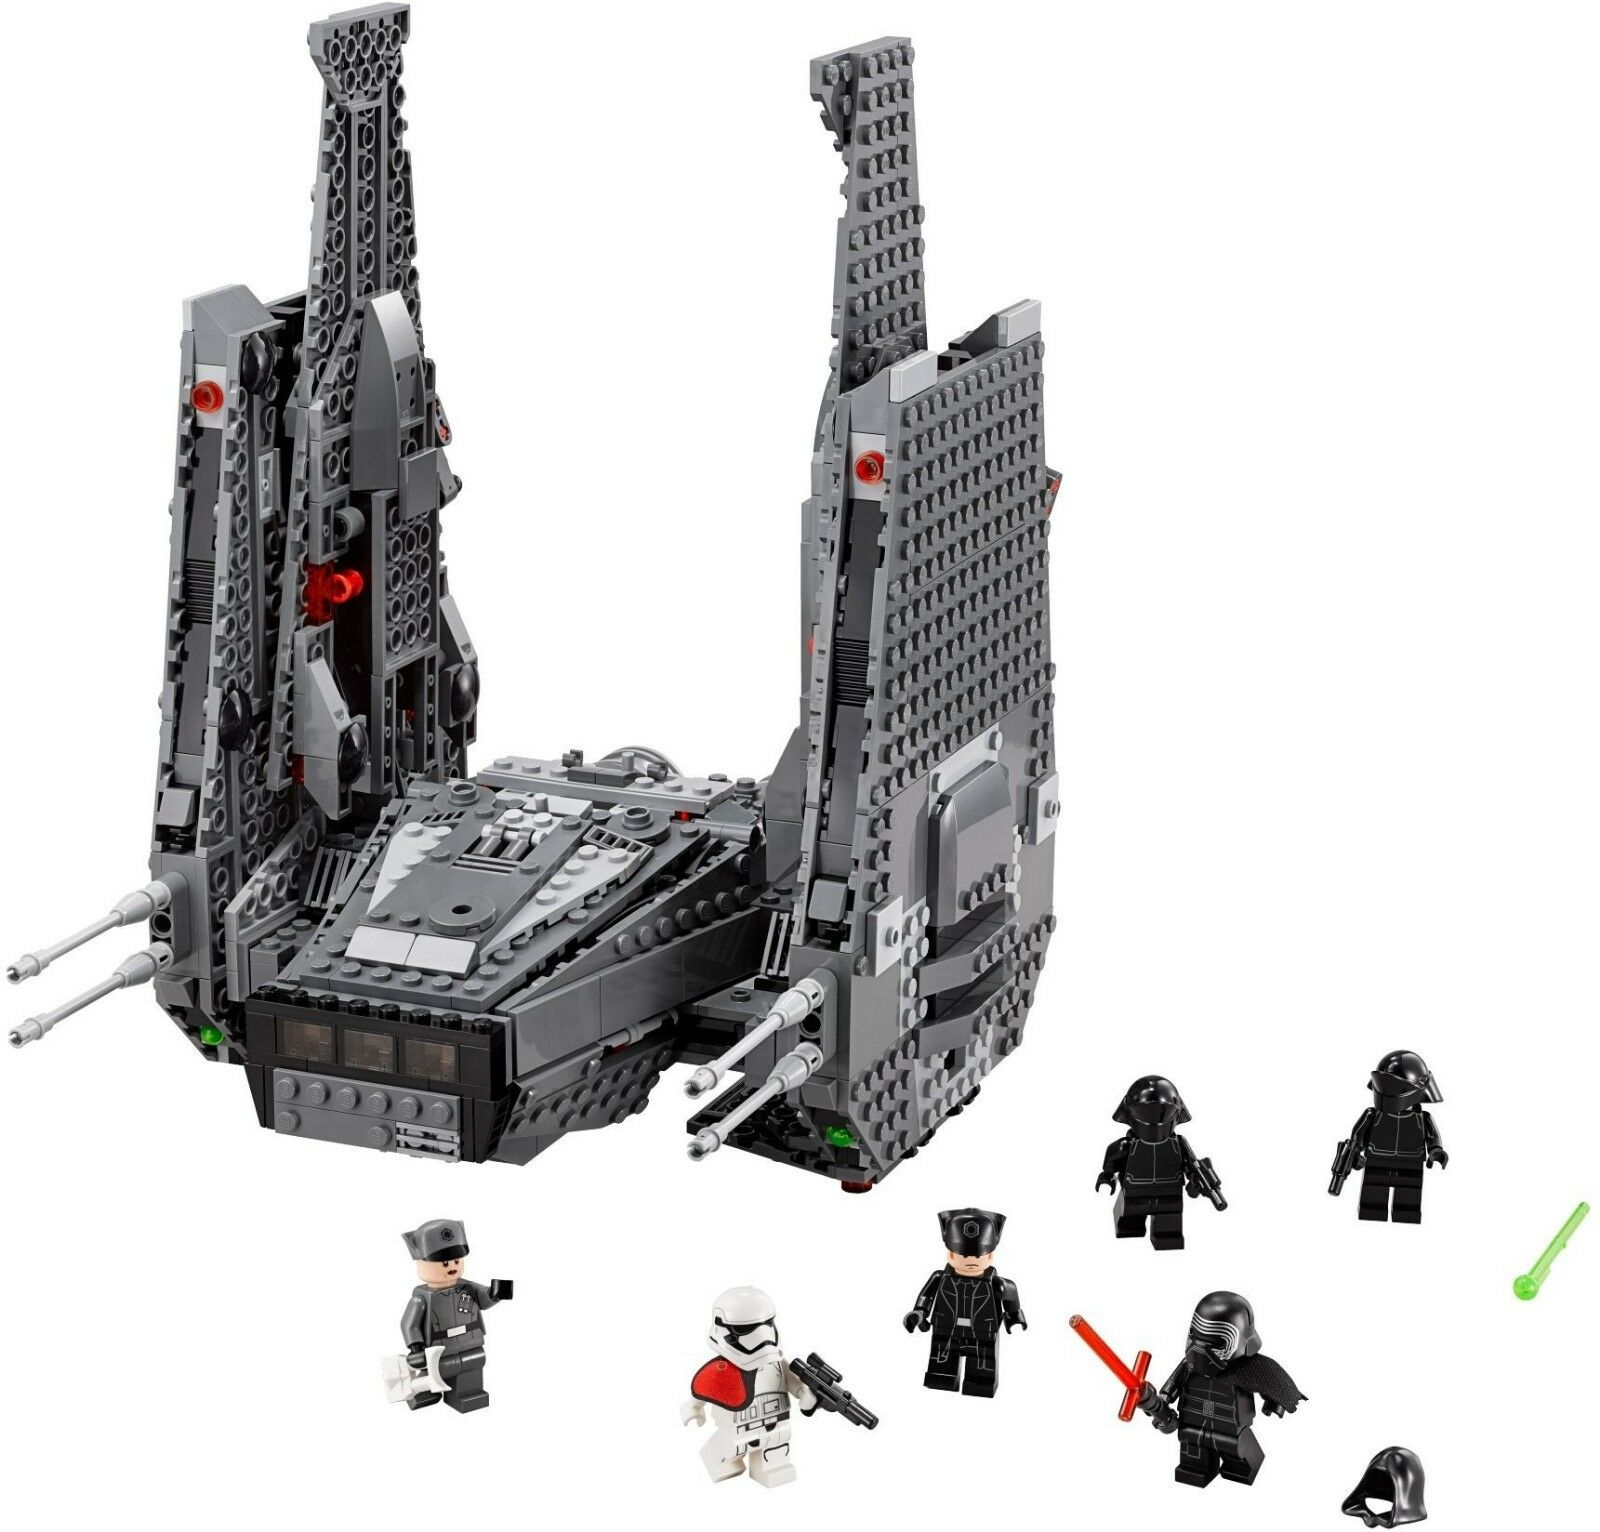 LEGO Star Wars 75104 Kylo Ren's Shuttle 100% Complete w/ Manual & Minifigures